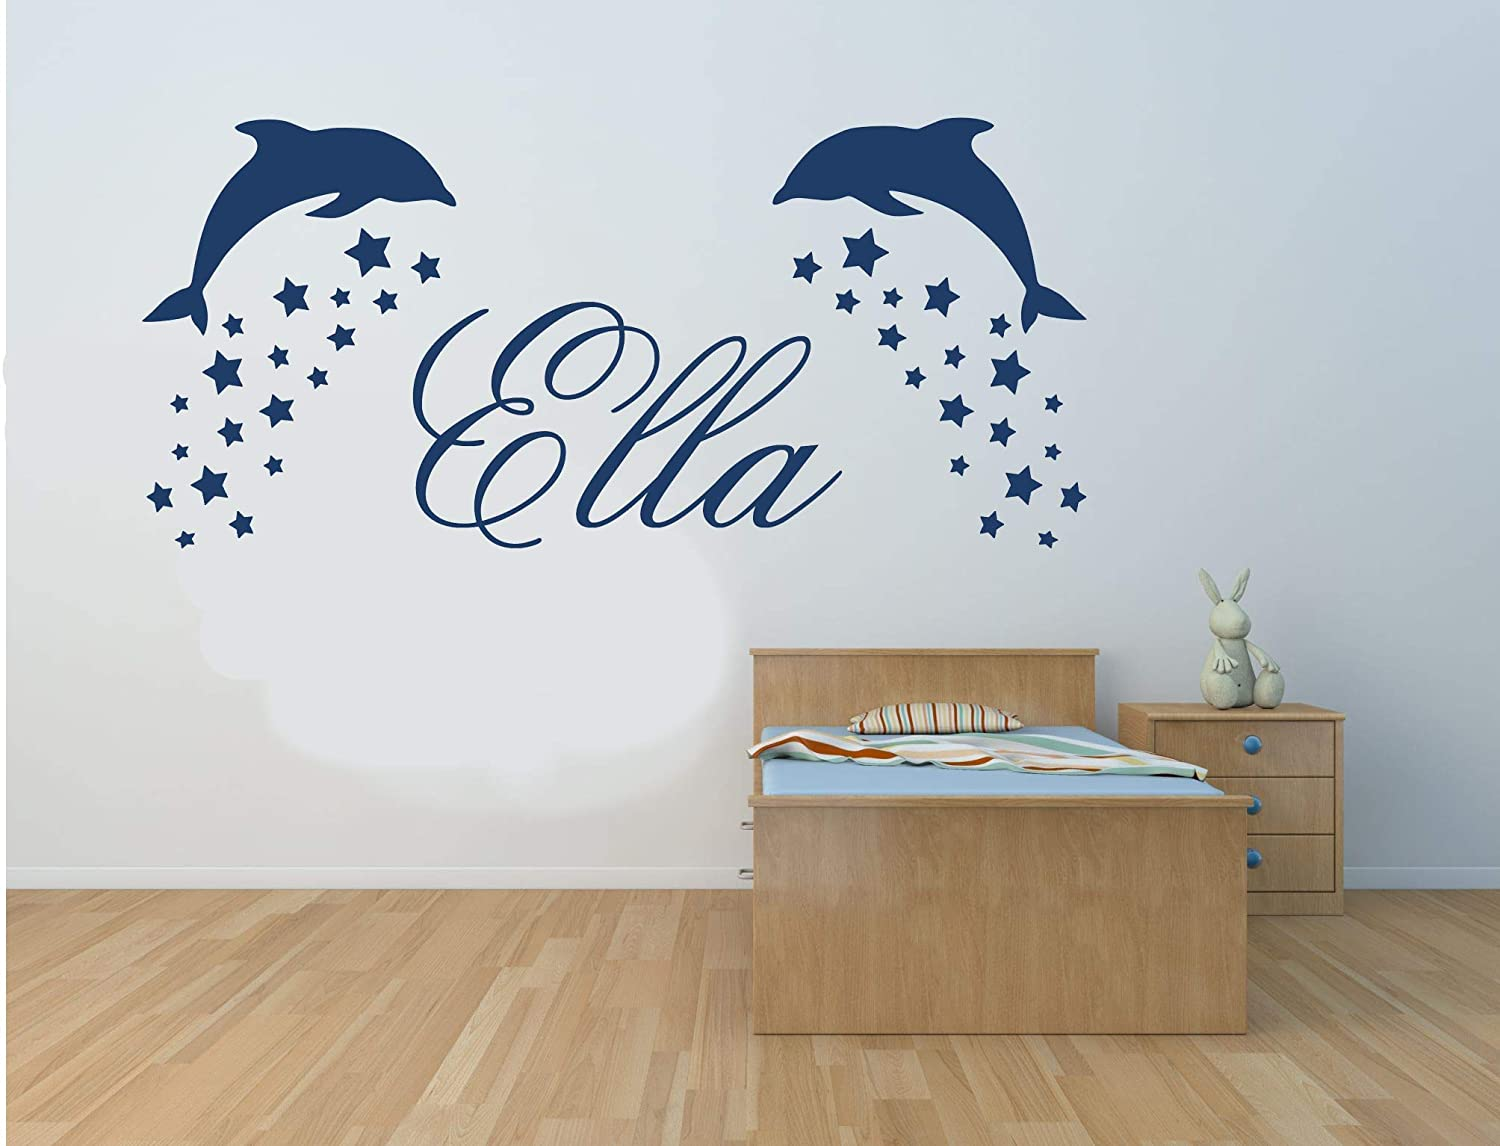 room decor Vinyl Decal Wall Art wall Sticker Vinyl Lettering Personalized Name Kids Room Nursery Mage Game Child Bedroom FN203